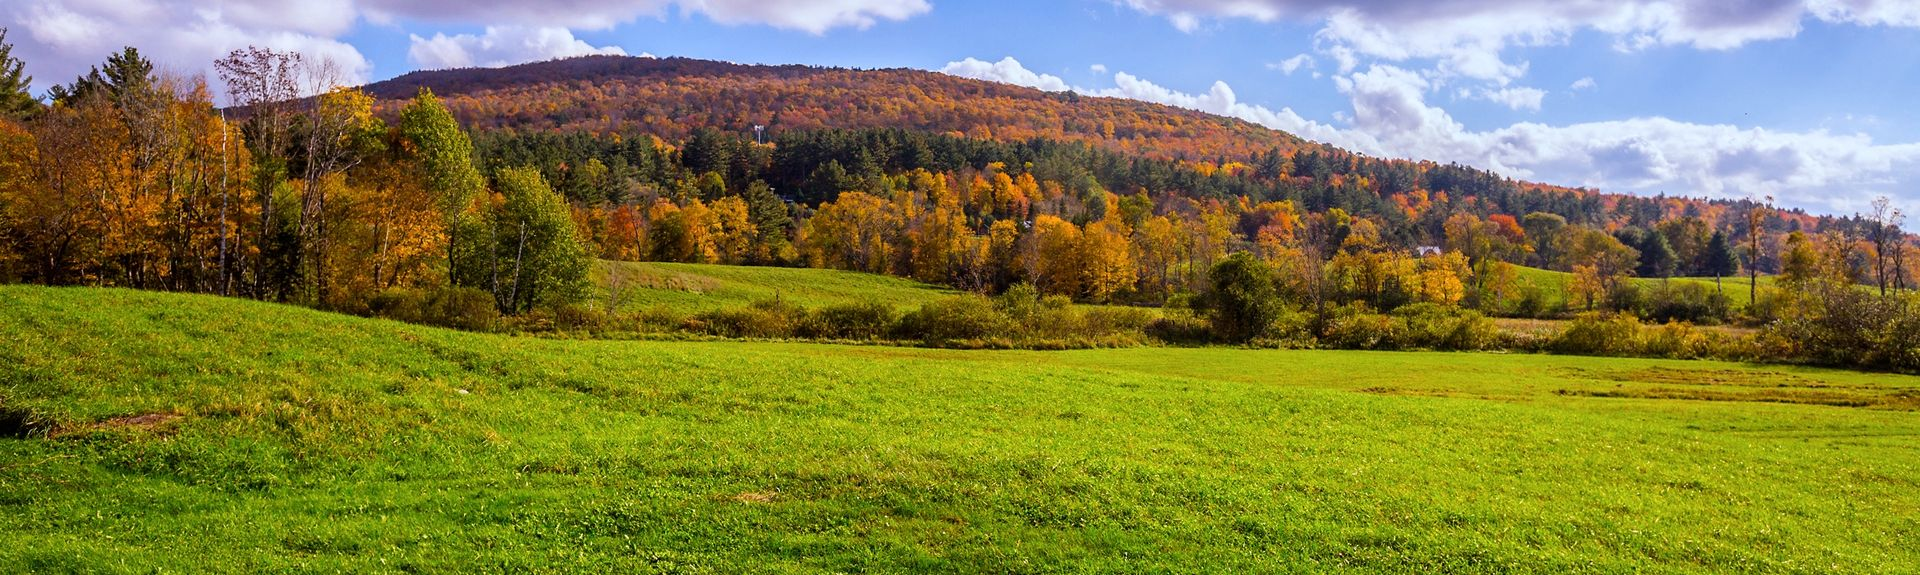 South Londonderry, Vermont, États-Unis d'Amérique